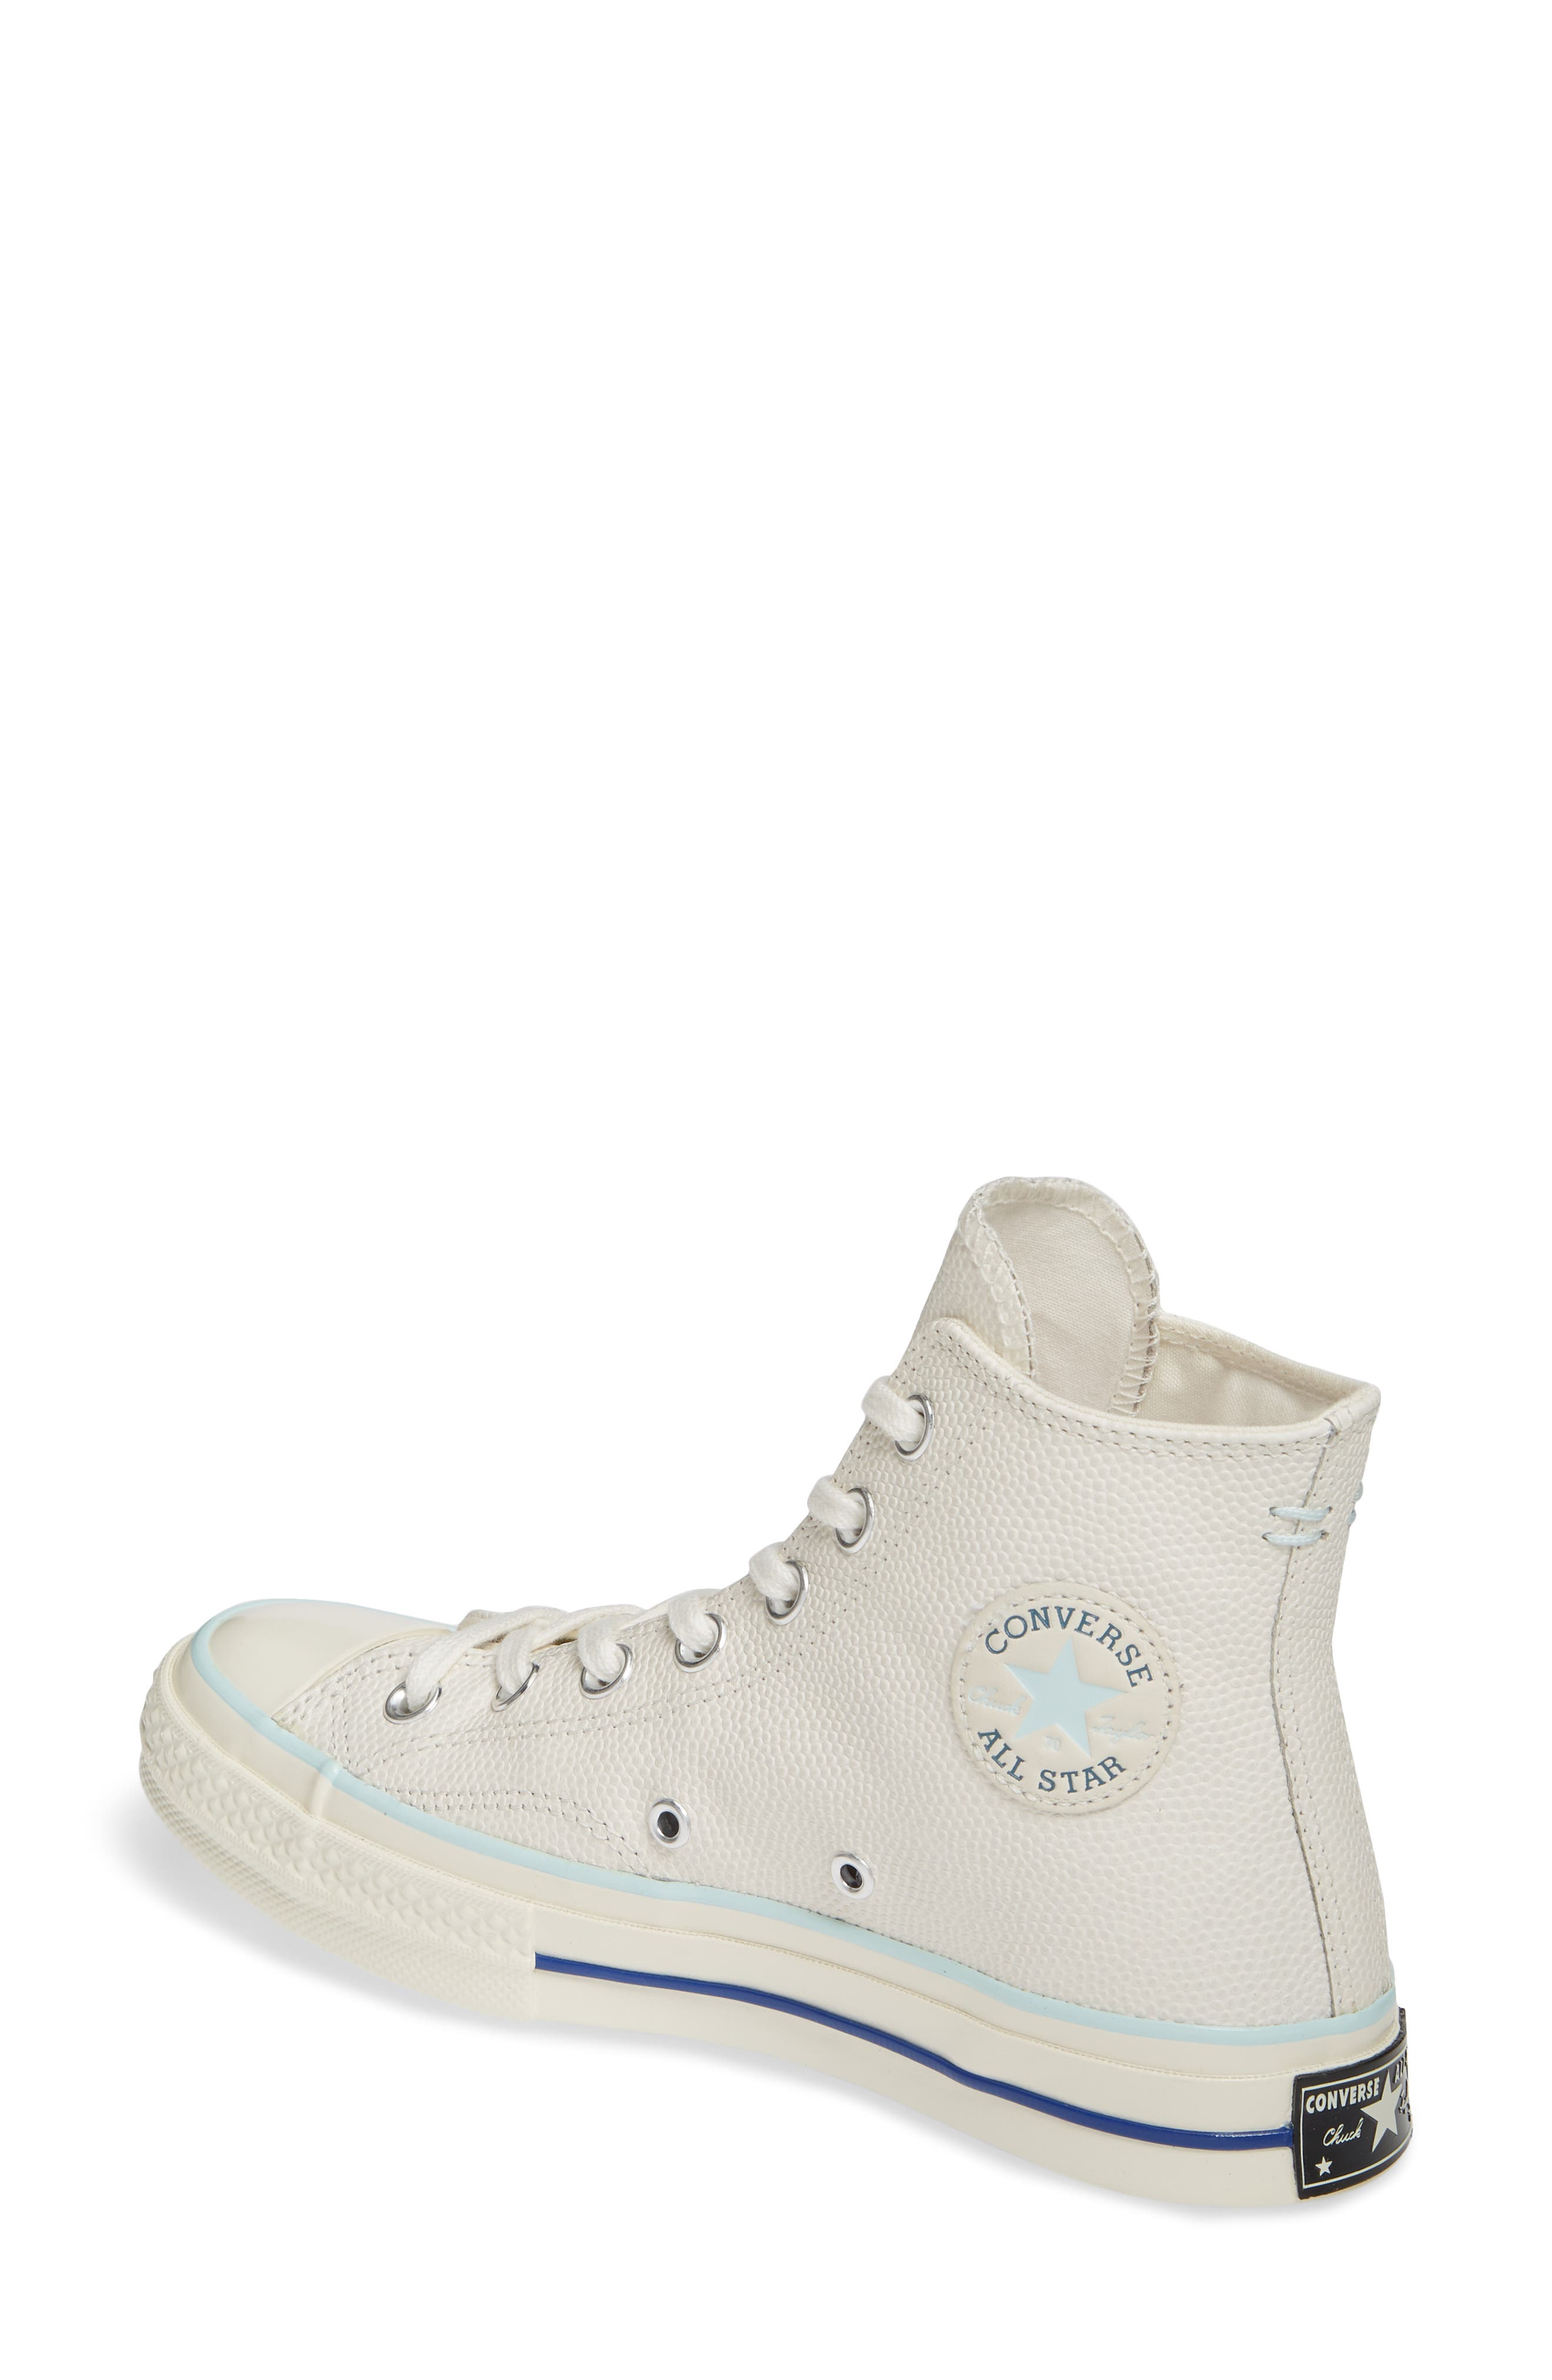 CONVERSE, Chuck Taylor<sup>®</sup> All Star<sup>®</sup> 70 High Top Leather Sneaker, Alternate thumbnail 2, color, EGRET/ TEAL TINT/ EGRET